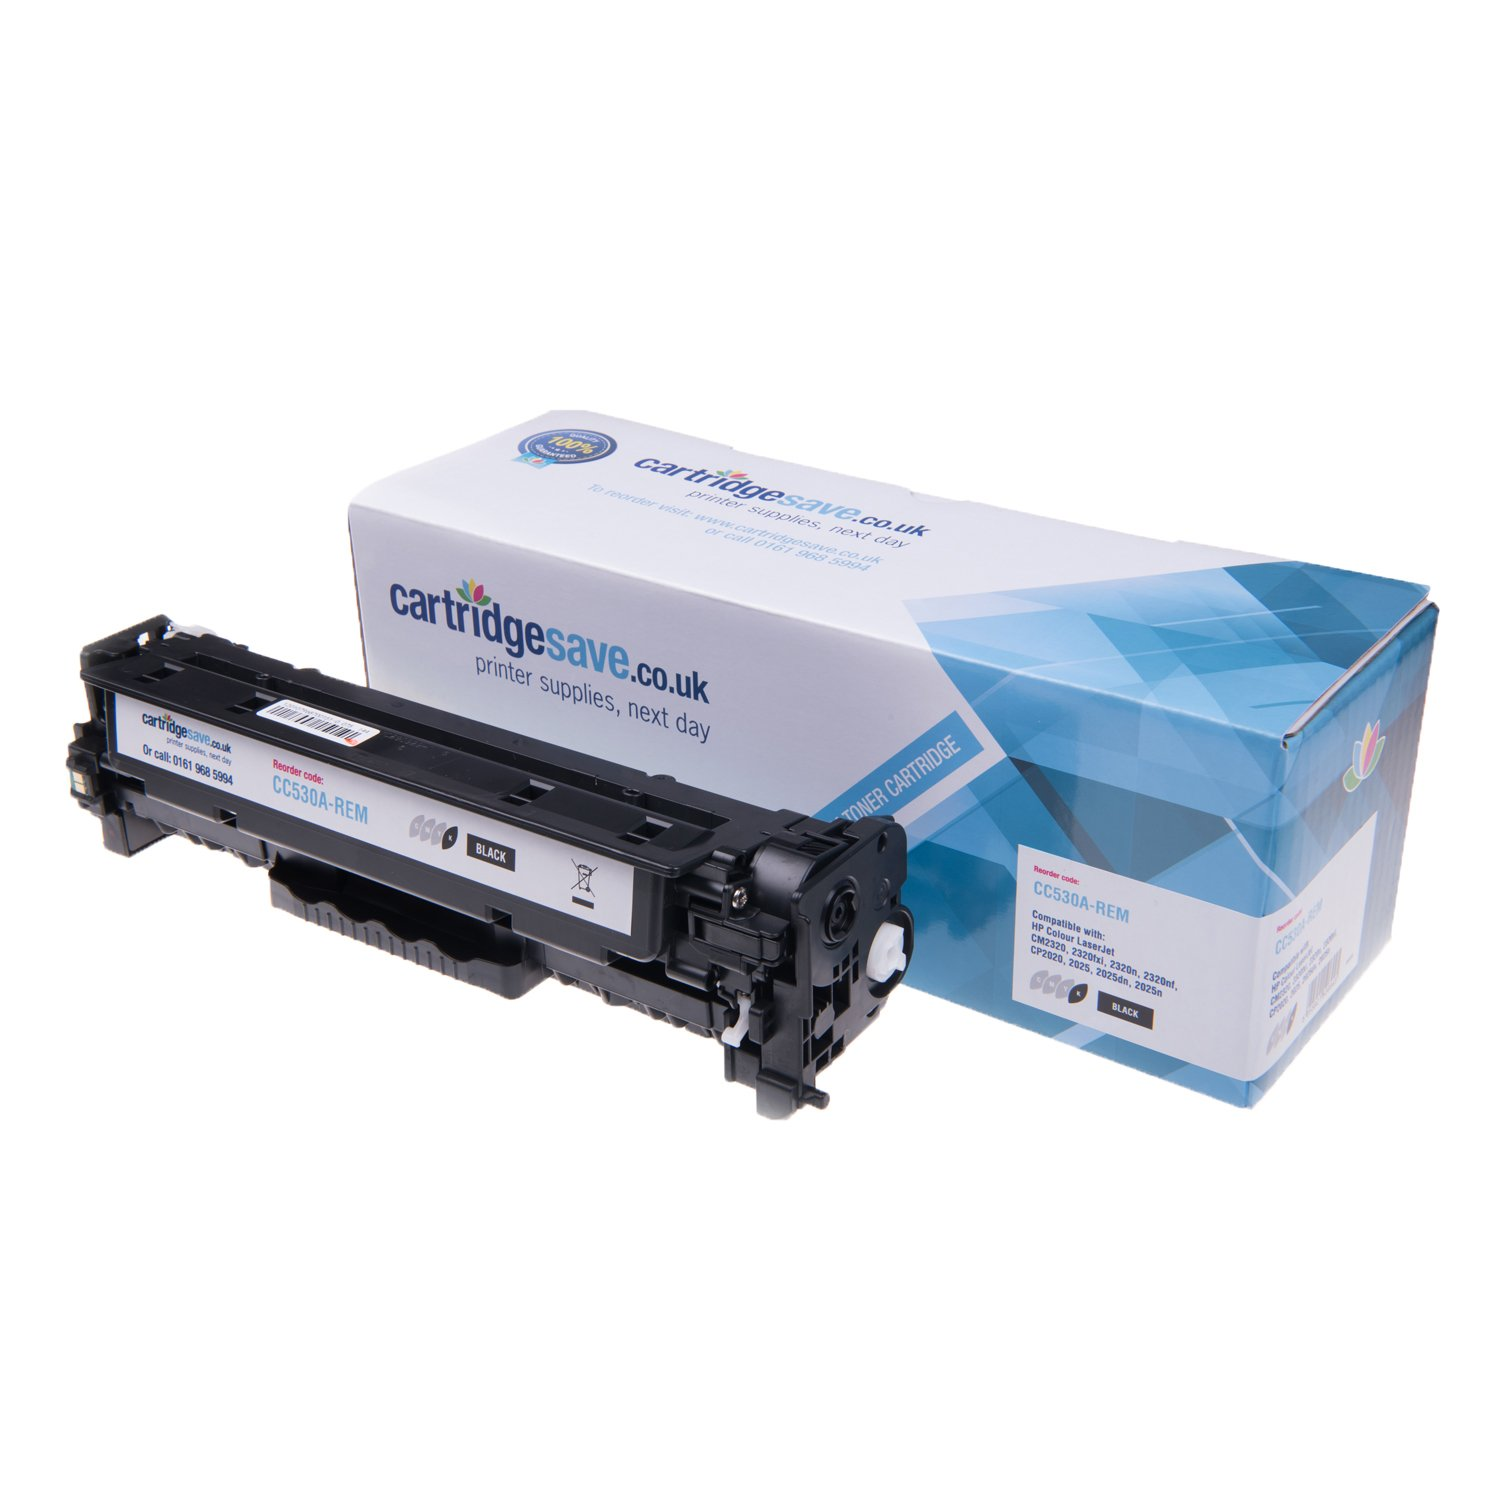 Compatible Black HP 304A Toner Cartridge - (HP CC530A)